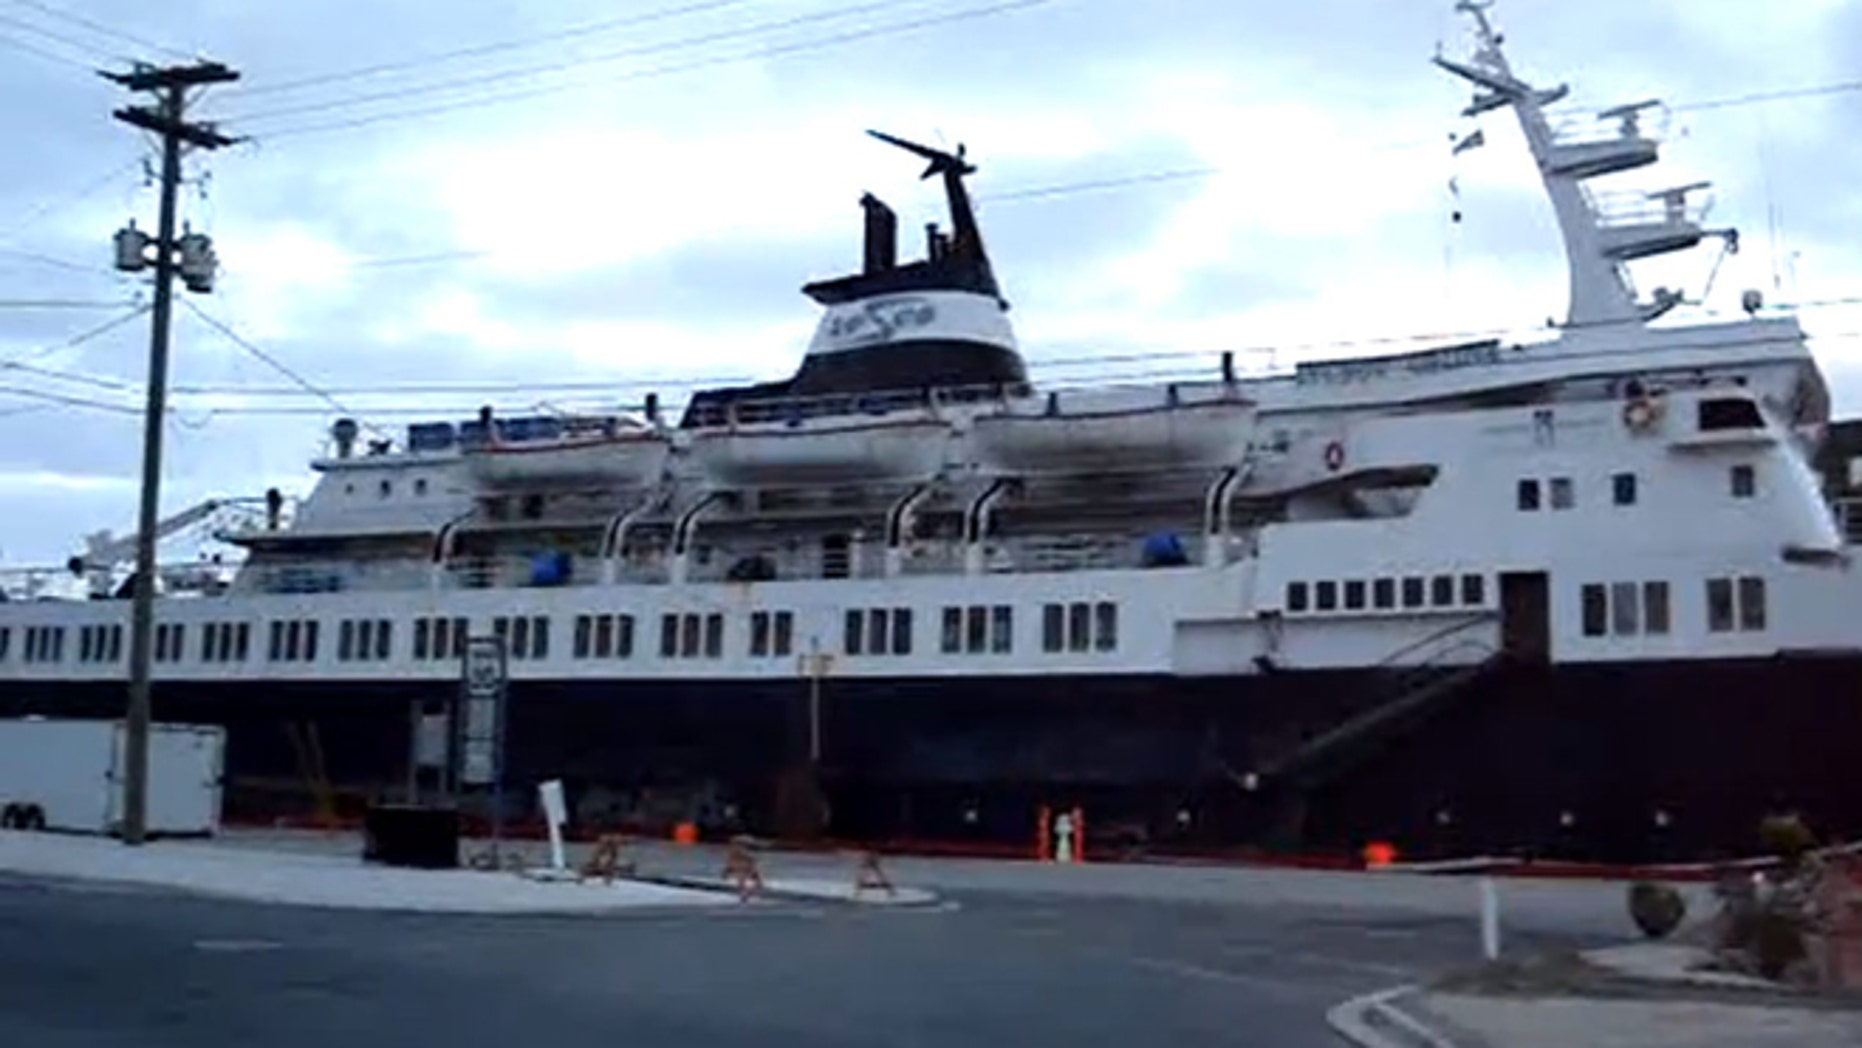 The Lyubov Orlova (shown here) was seized in St. John's, Newfoundland, in 2010 because of a financial dispute between the ship's Russian owners and a charter company.